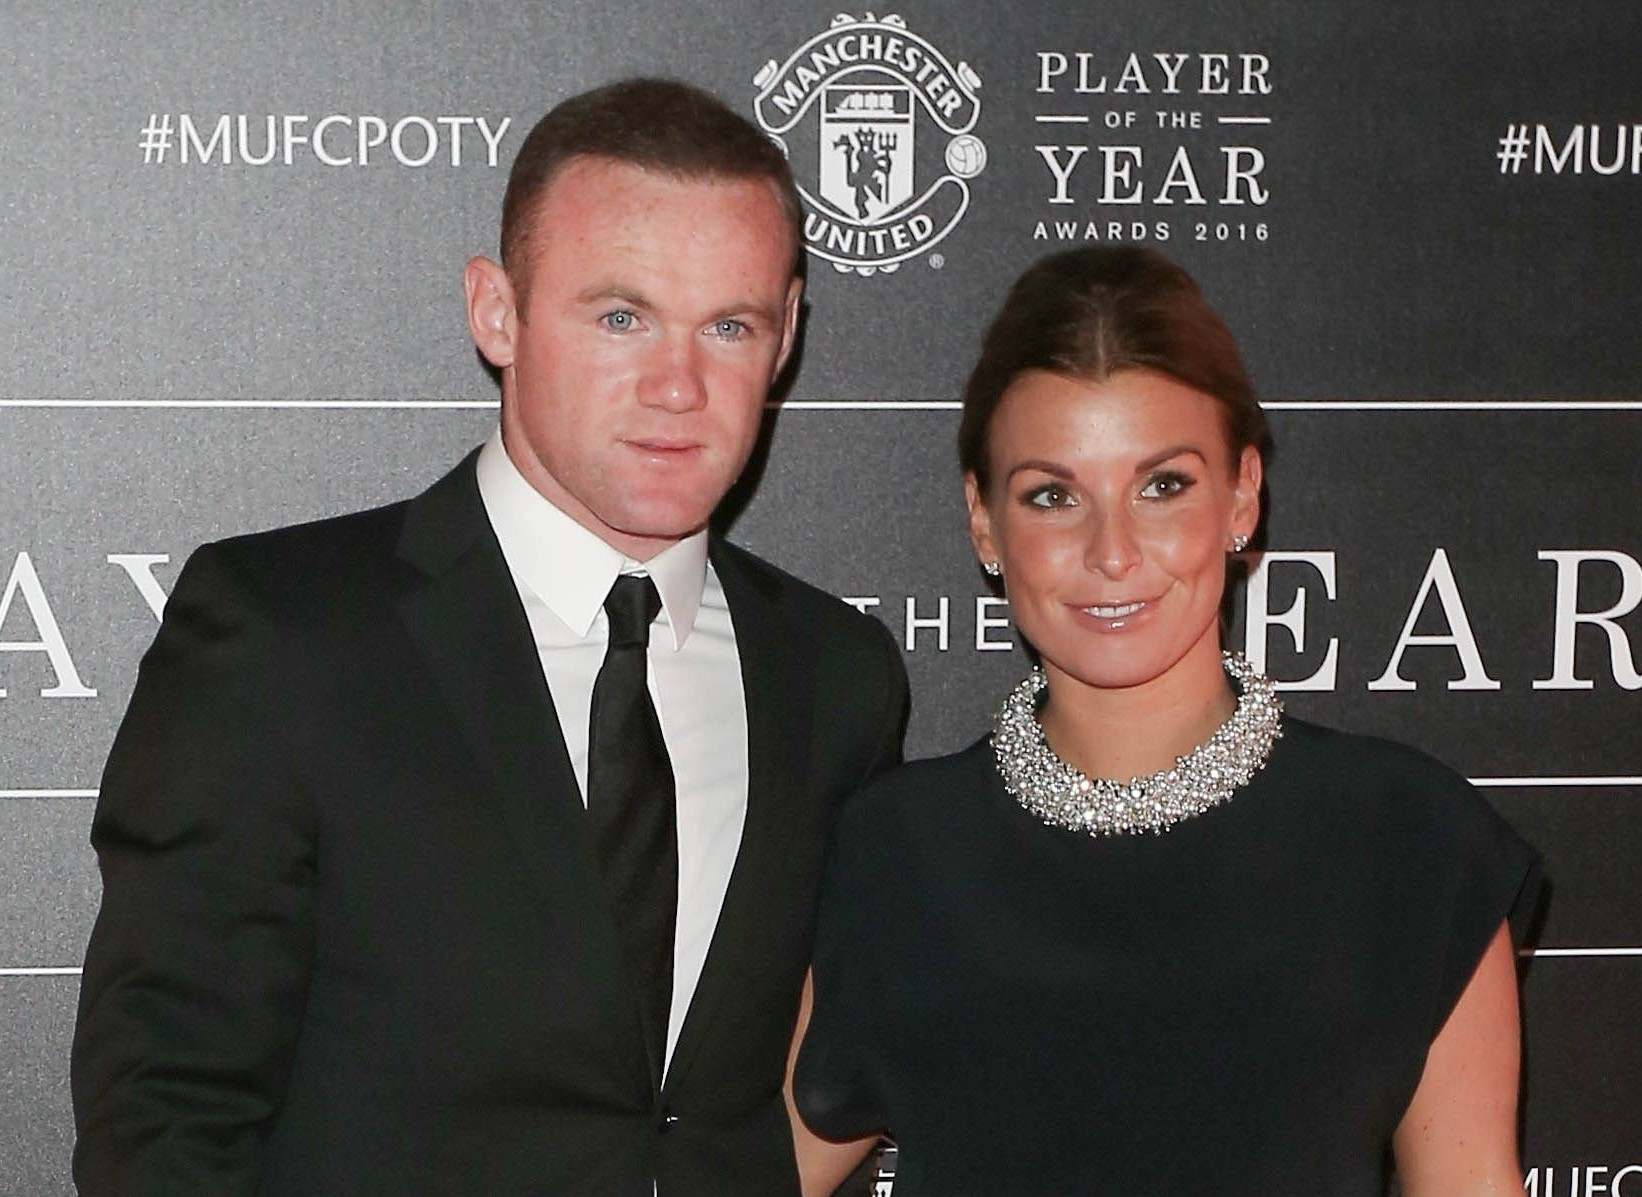 Coleen Rooney 'wants to appear on I'm A Celebrity or Strictly'